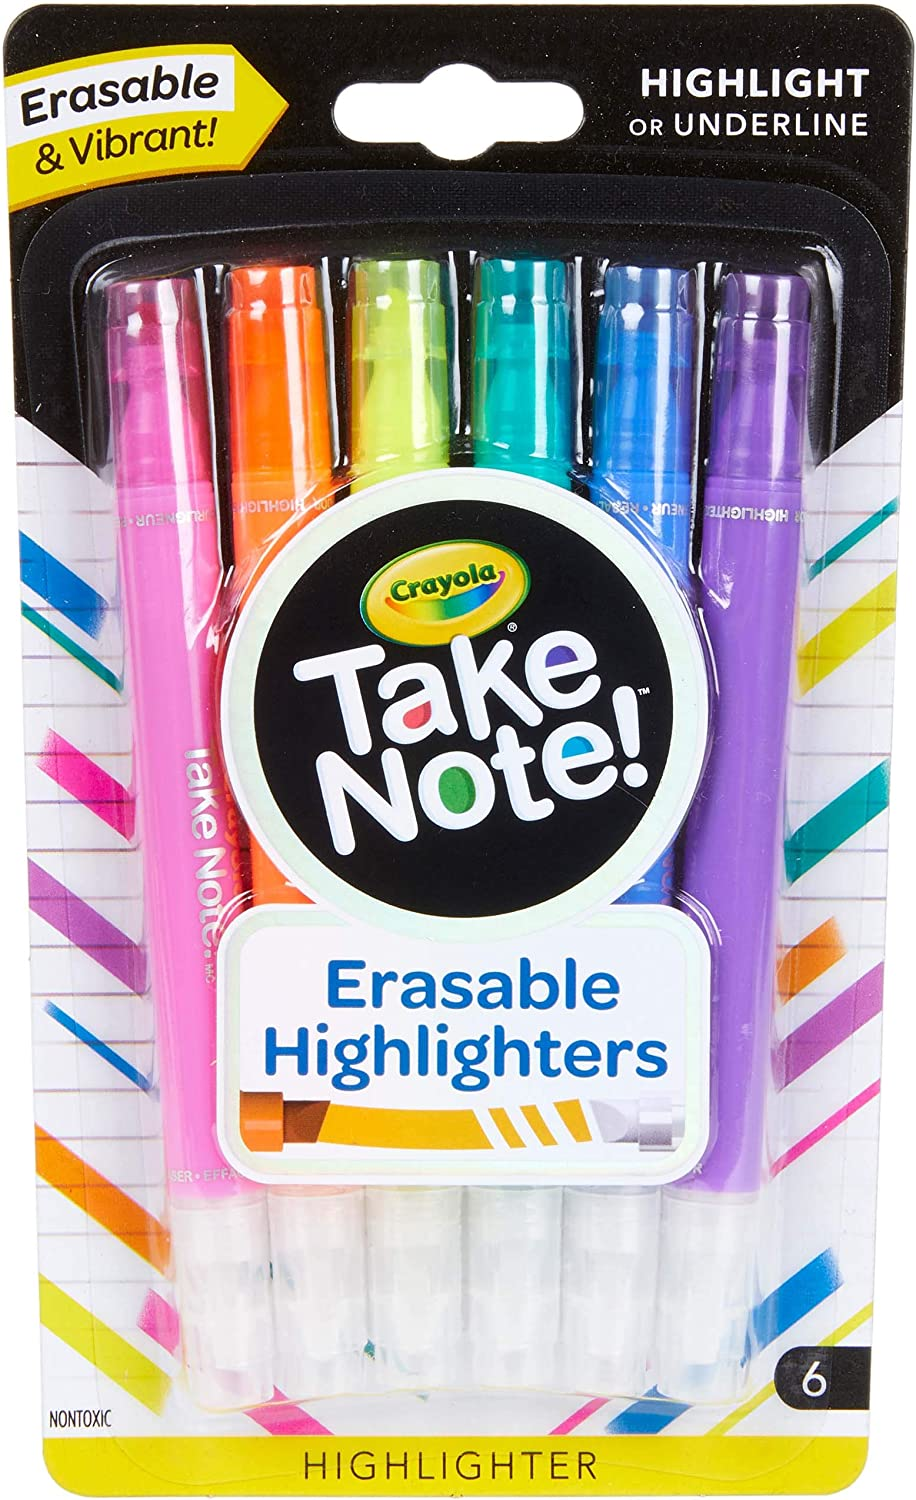 Crayola Take Note Erasable Highlighters, Teen Stocking Stuffers, Chisel Tip Markers, 6 Count